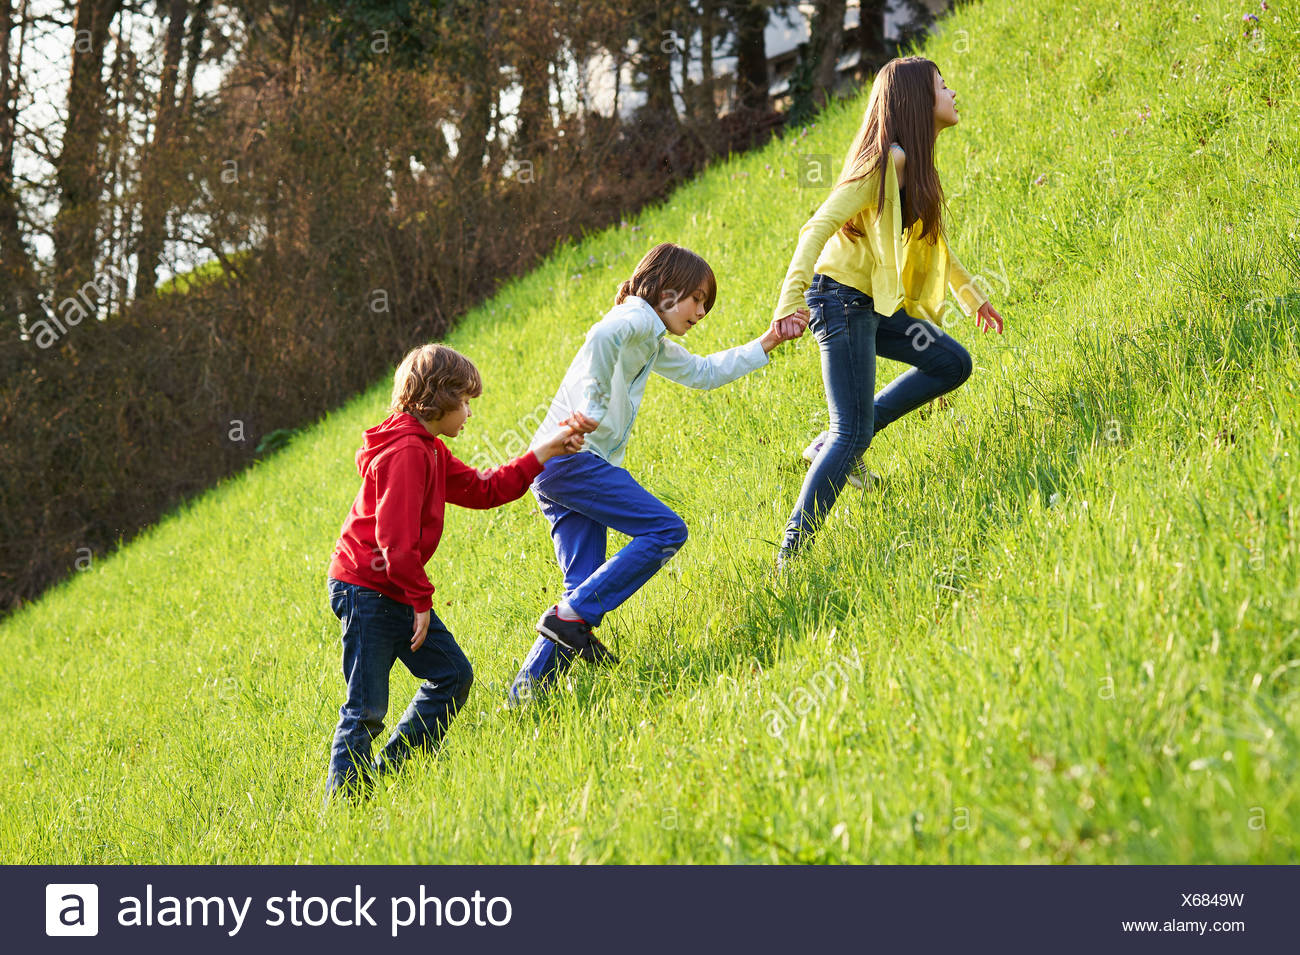 Sister and younger brothers climbing up grassy field - Stock Image